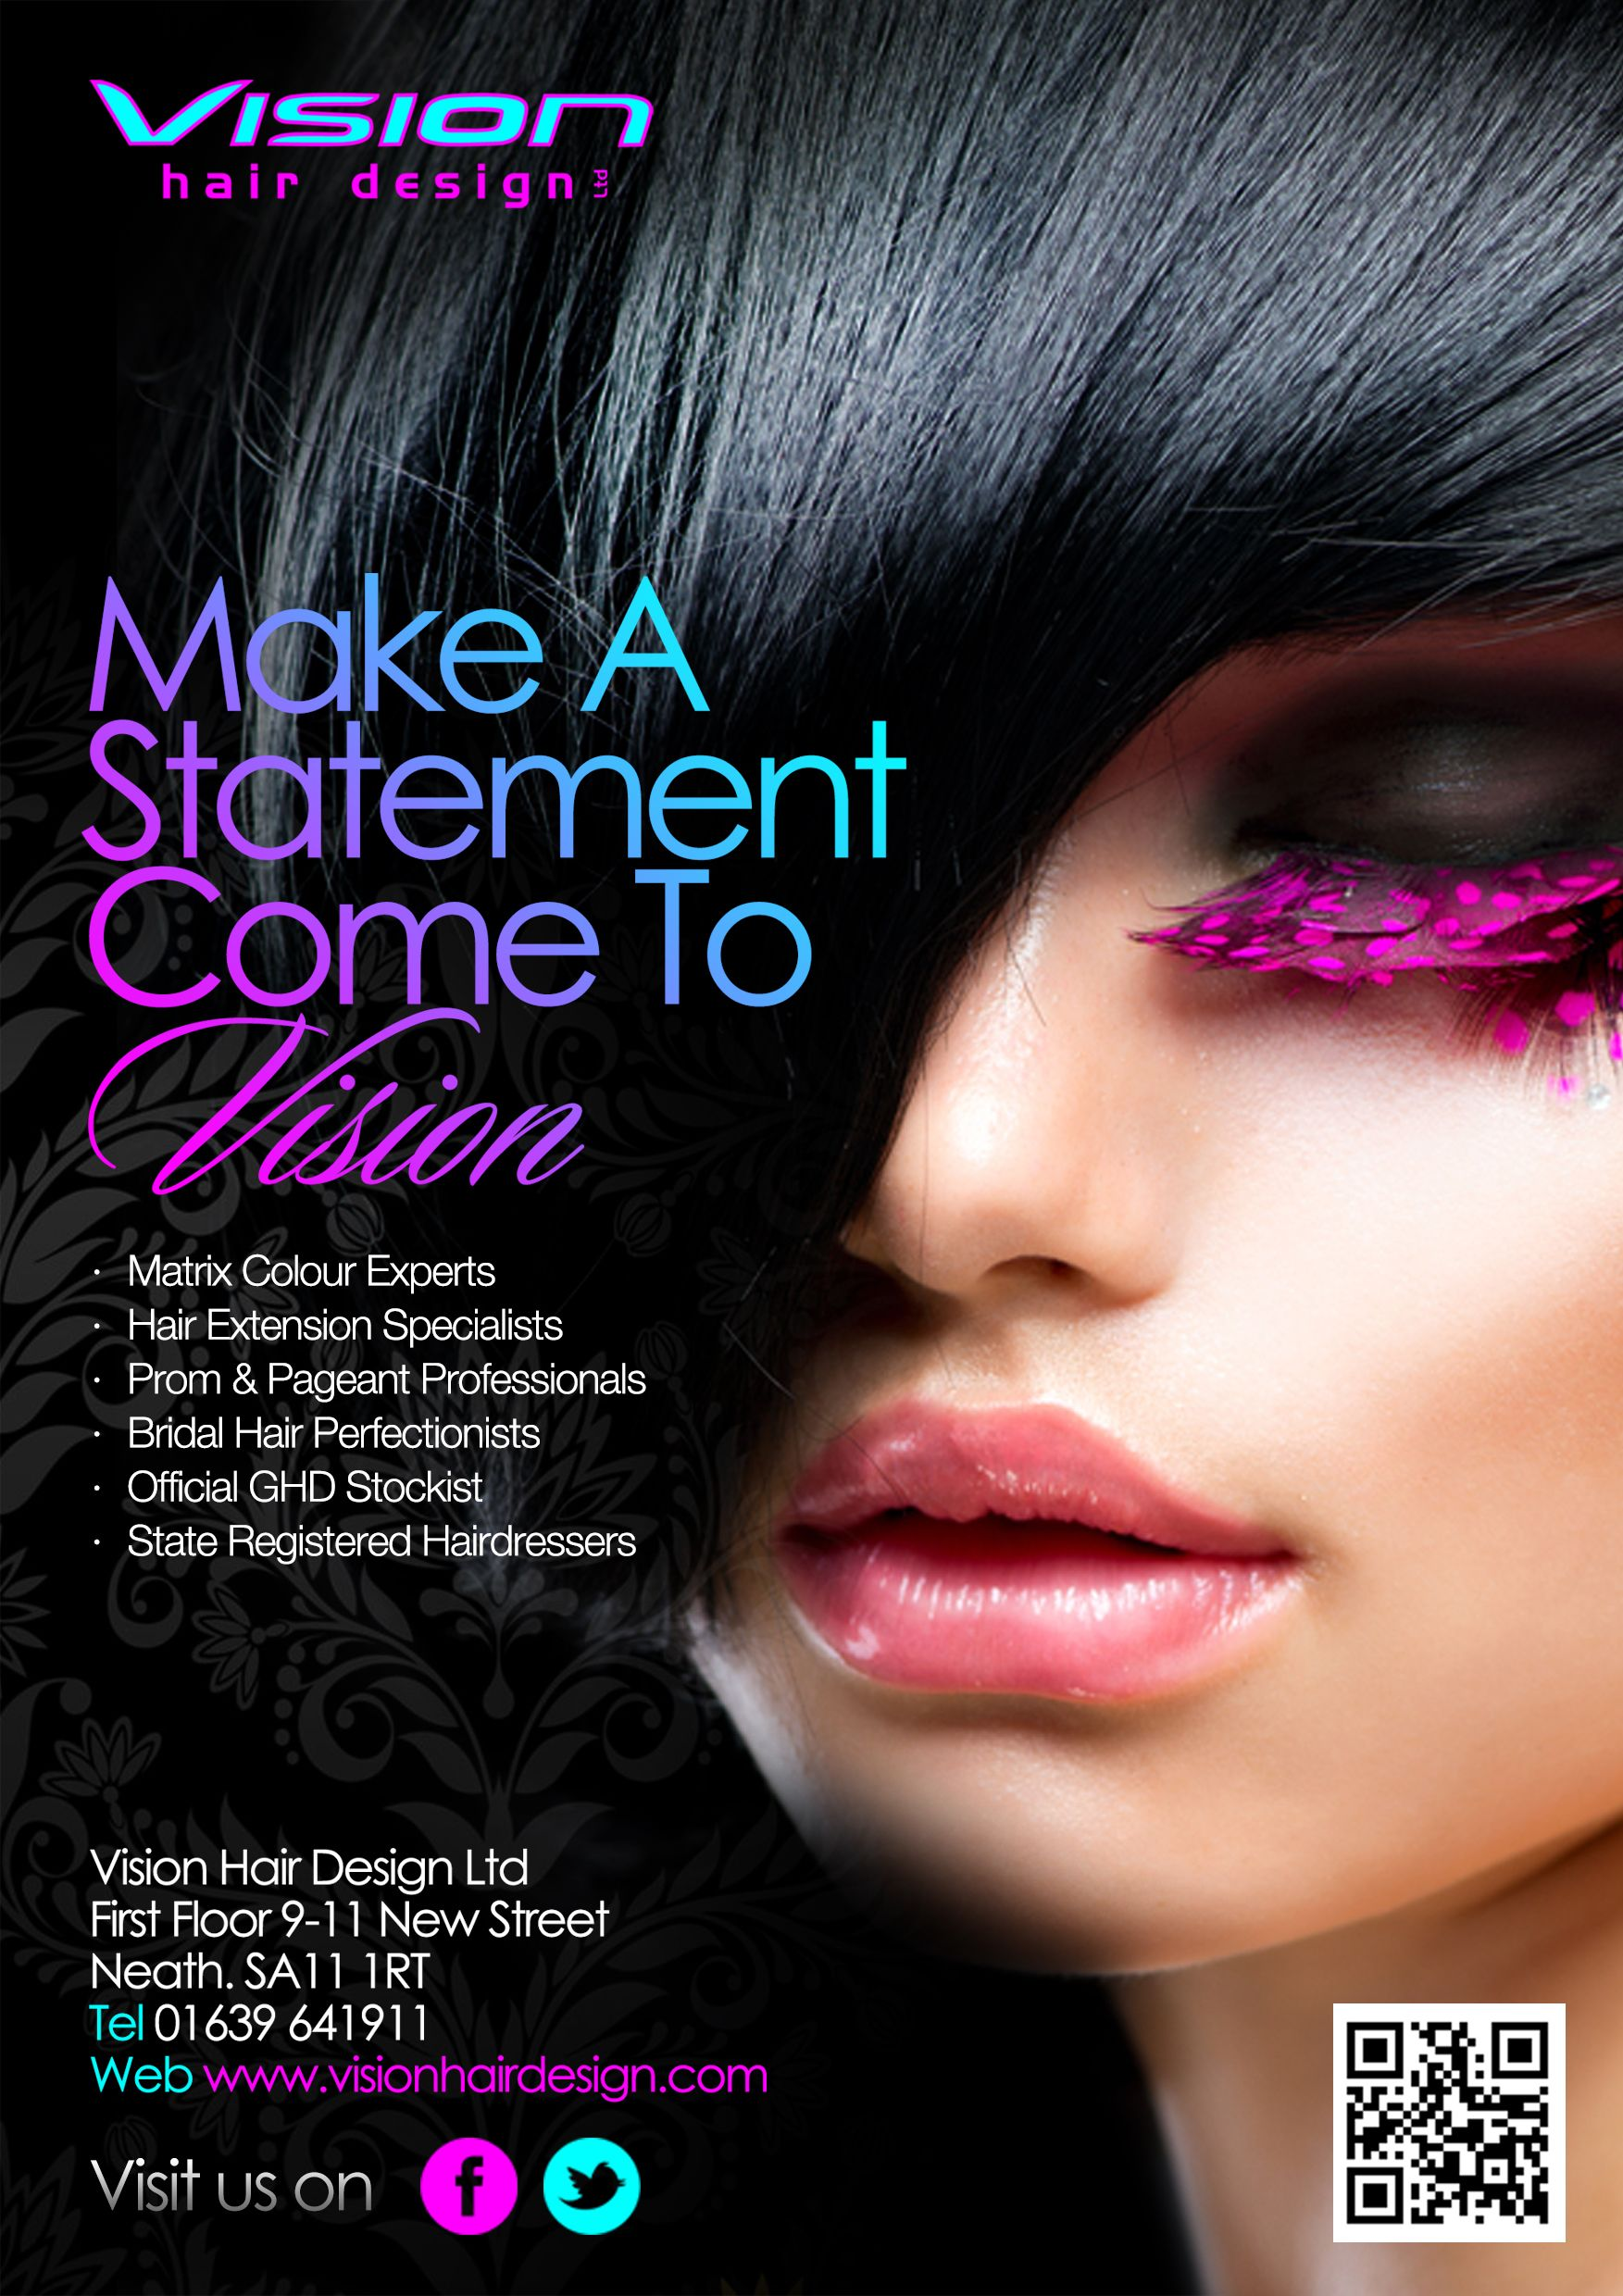 Vision hair design ltd flyer 2013 hair and beauty techniques pinterest marketing for Salon flyers ideas